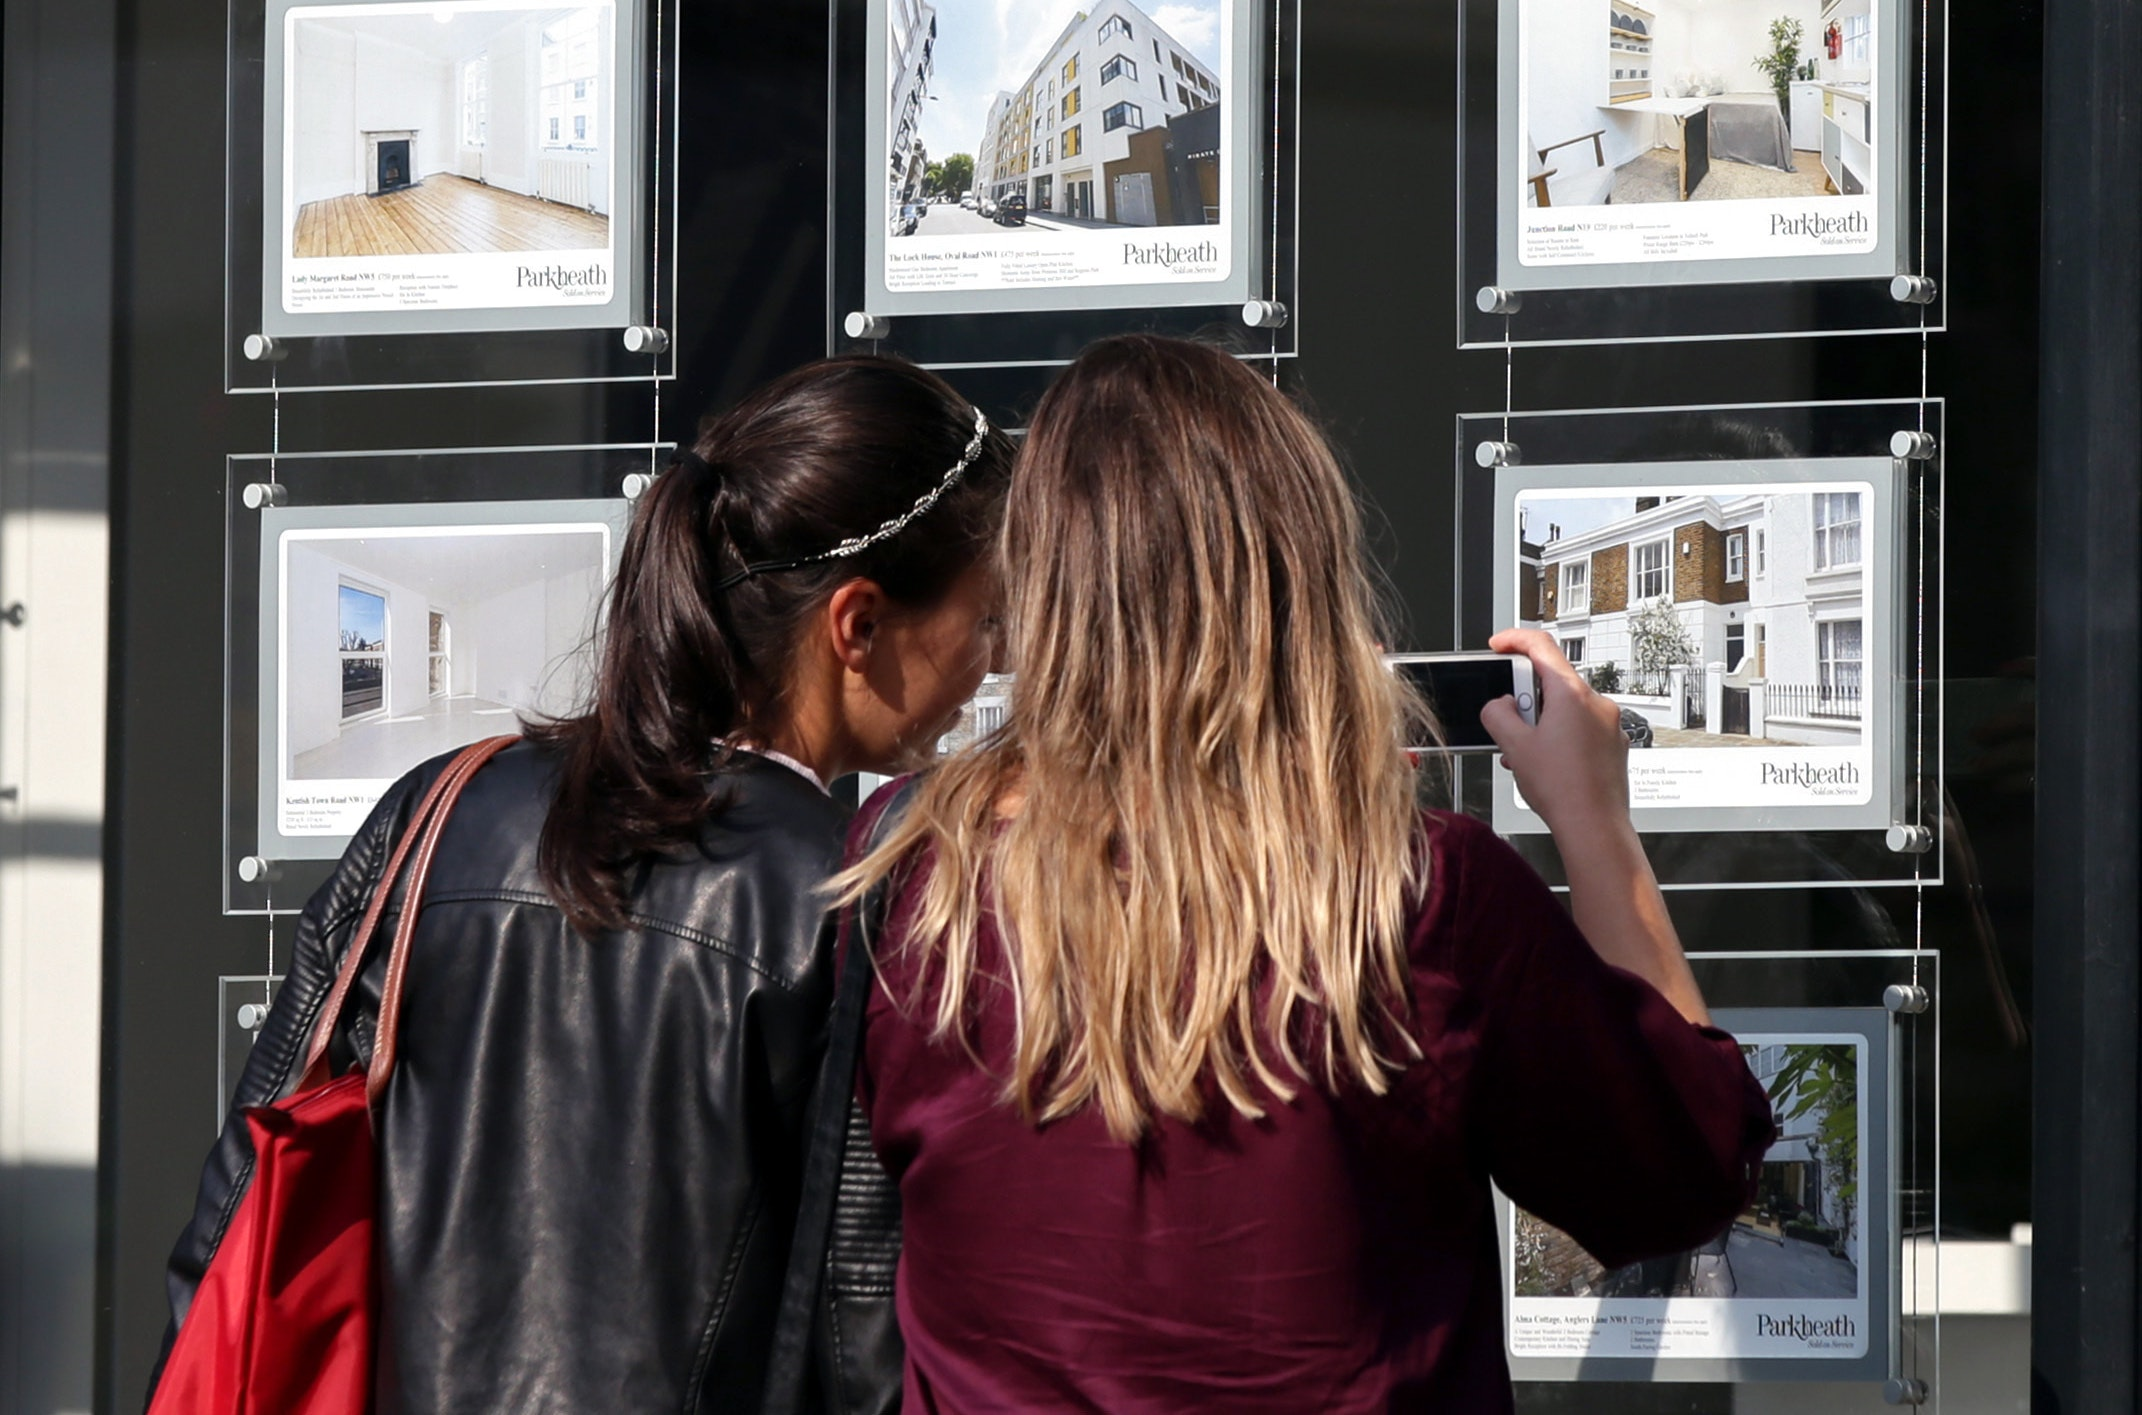 Scotland 'bucking trend' with new peak average house price